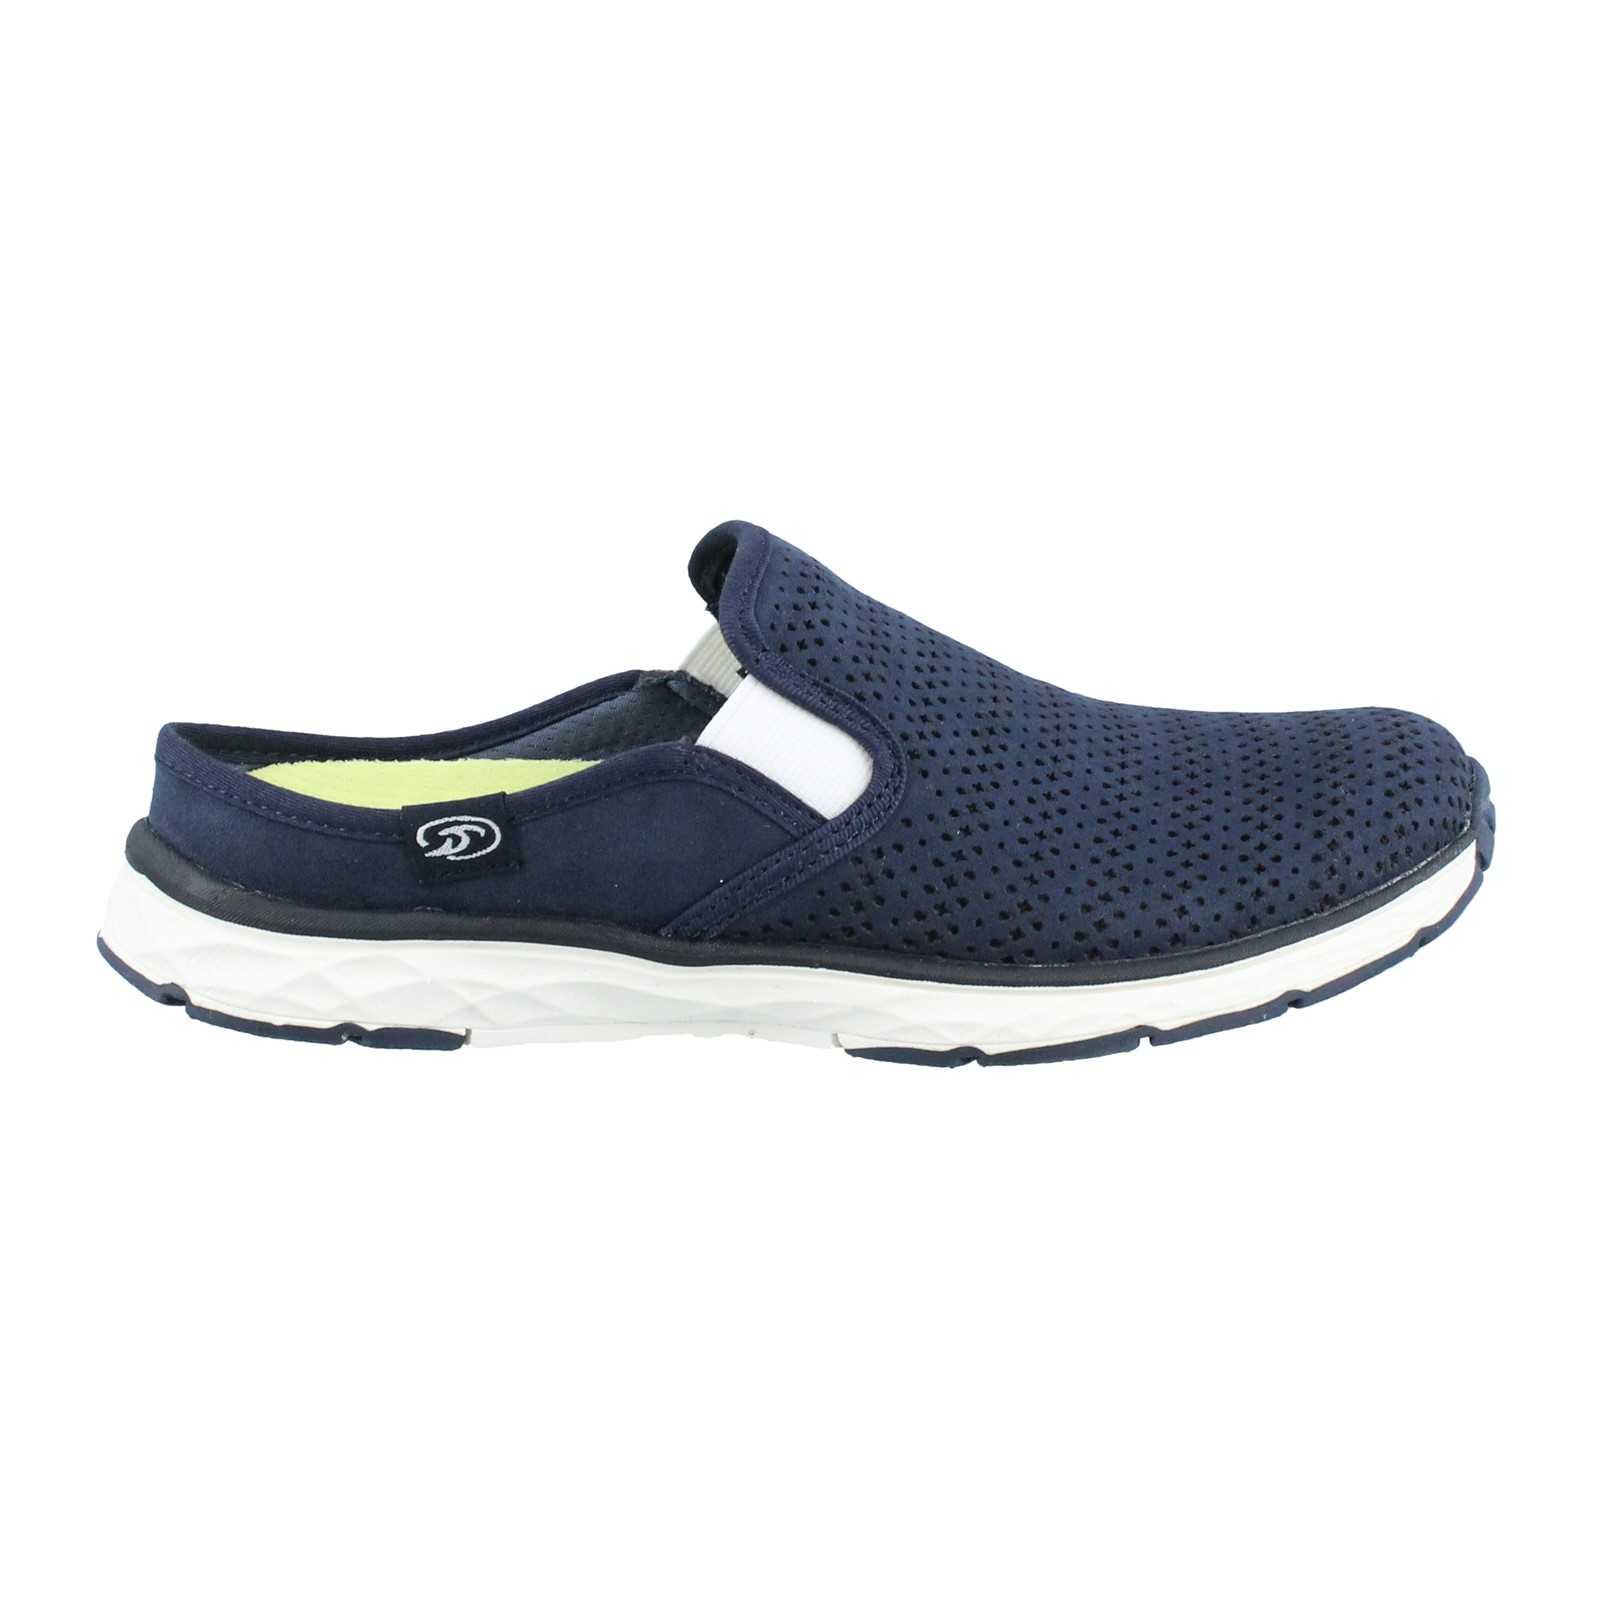 Women's Dr Scholls, Alma Slip-On